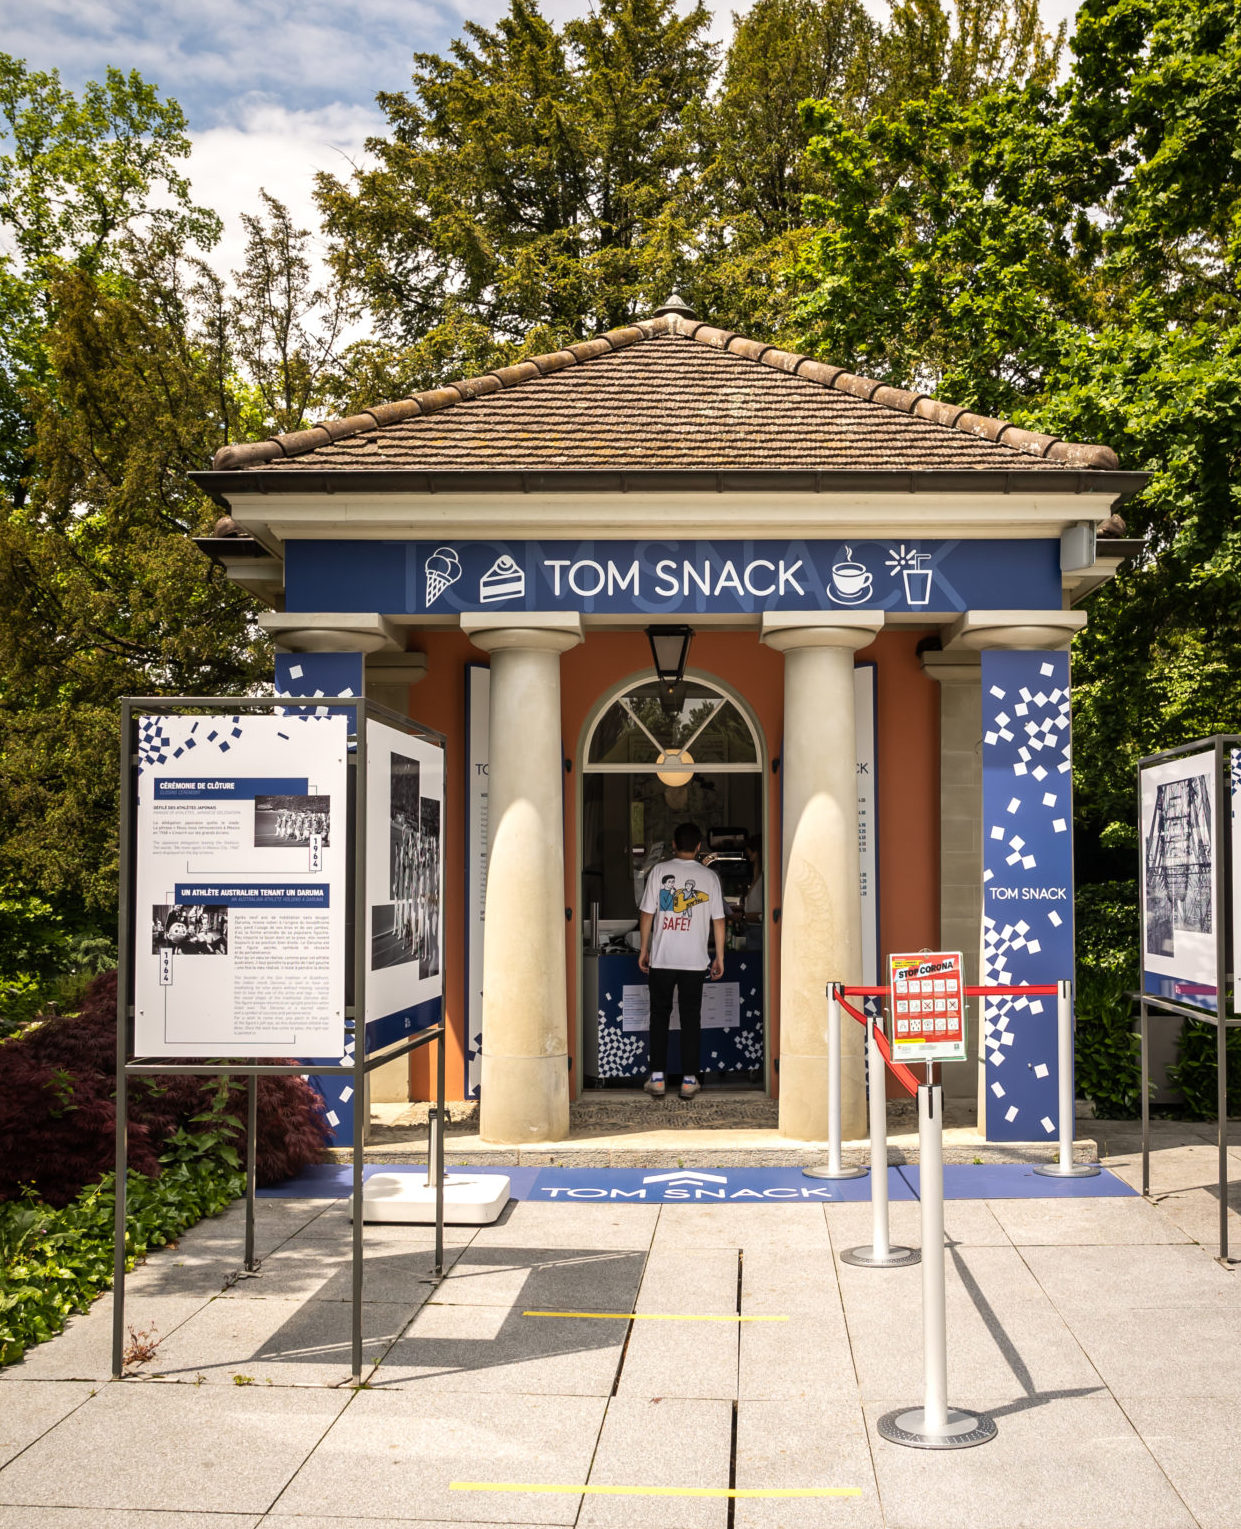 Tom-snack-musee-olympique-lausanne-take-away